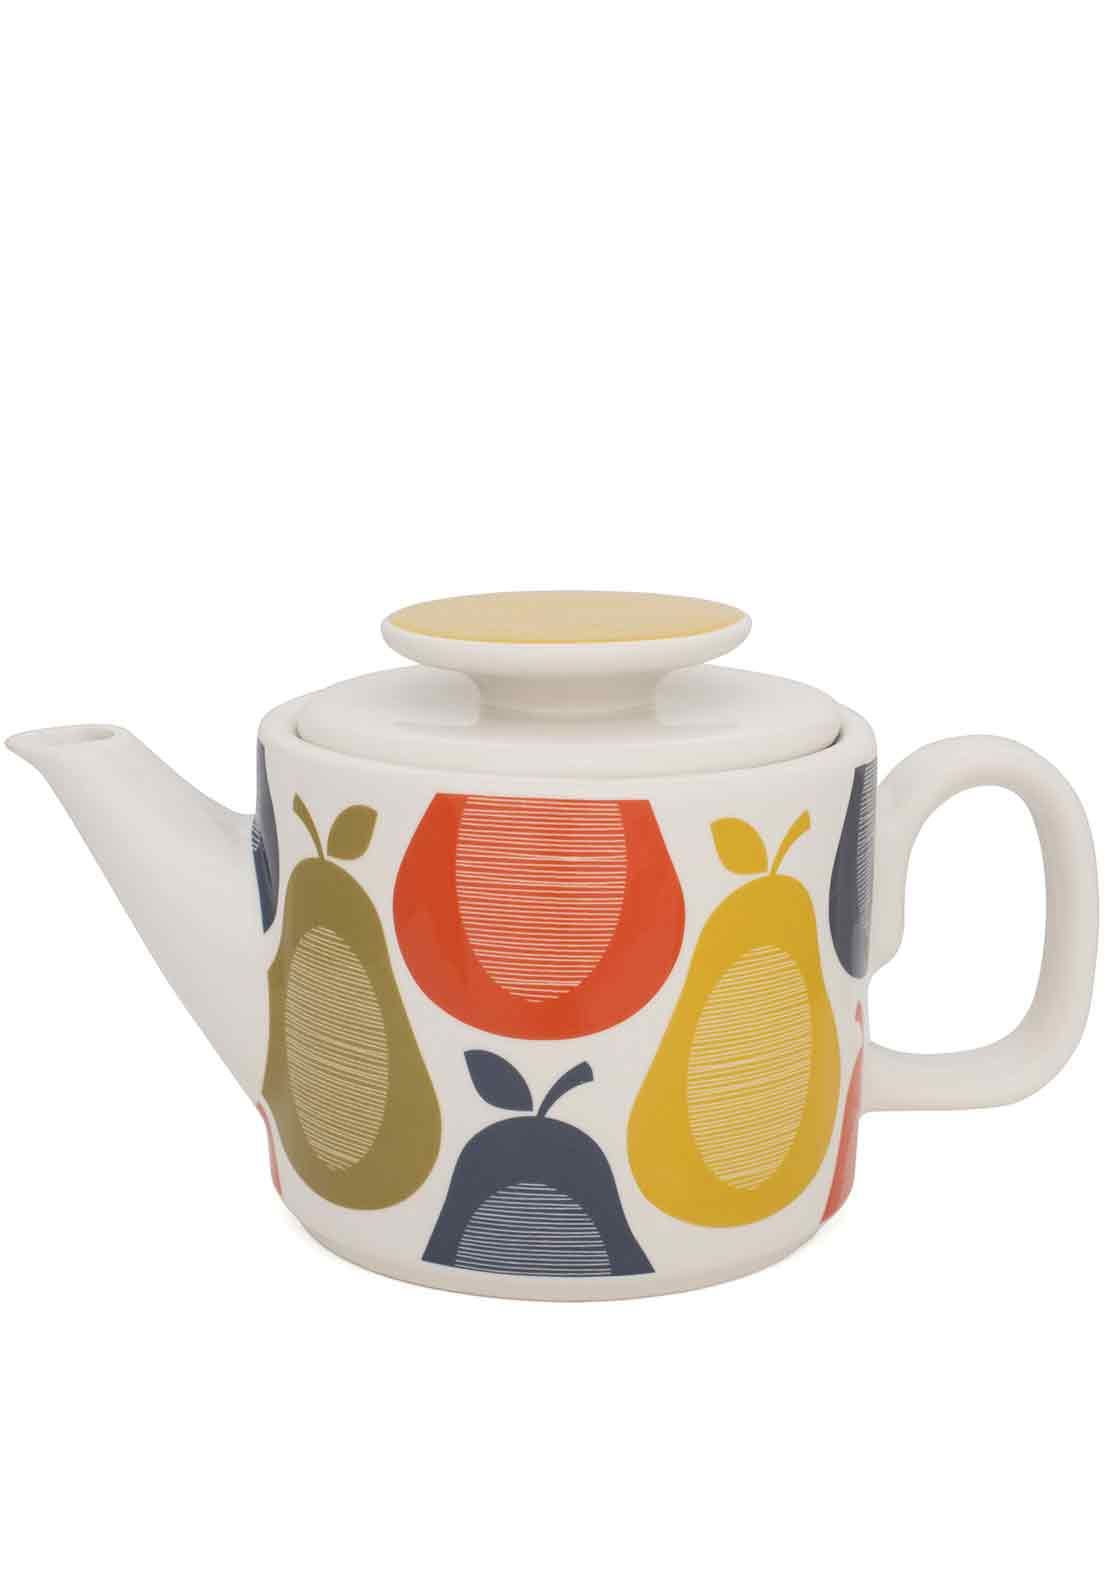 Orla Kiely Pear Teapot, Multi-Coloured